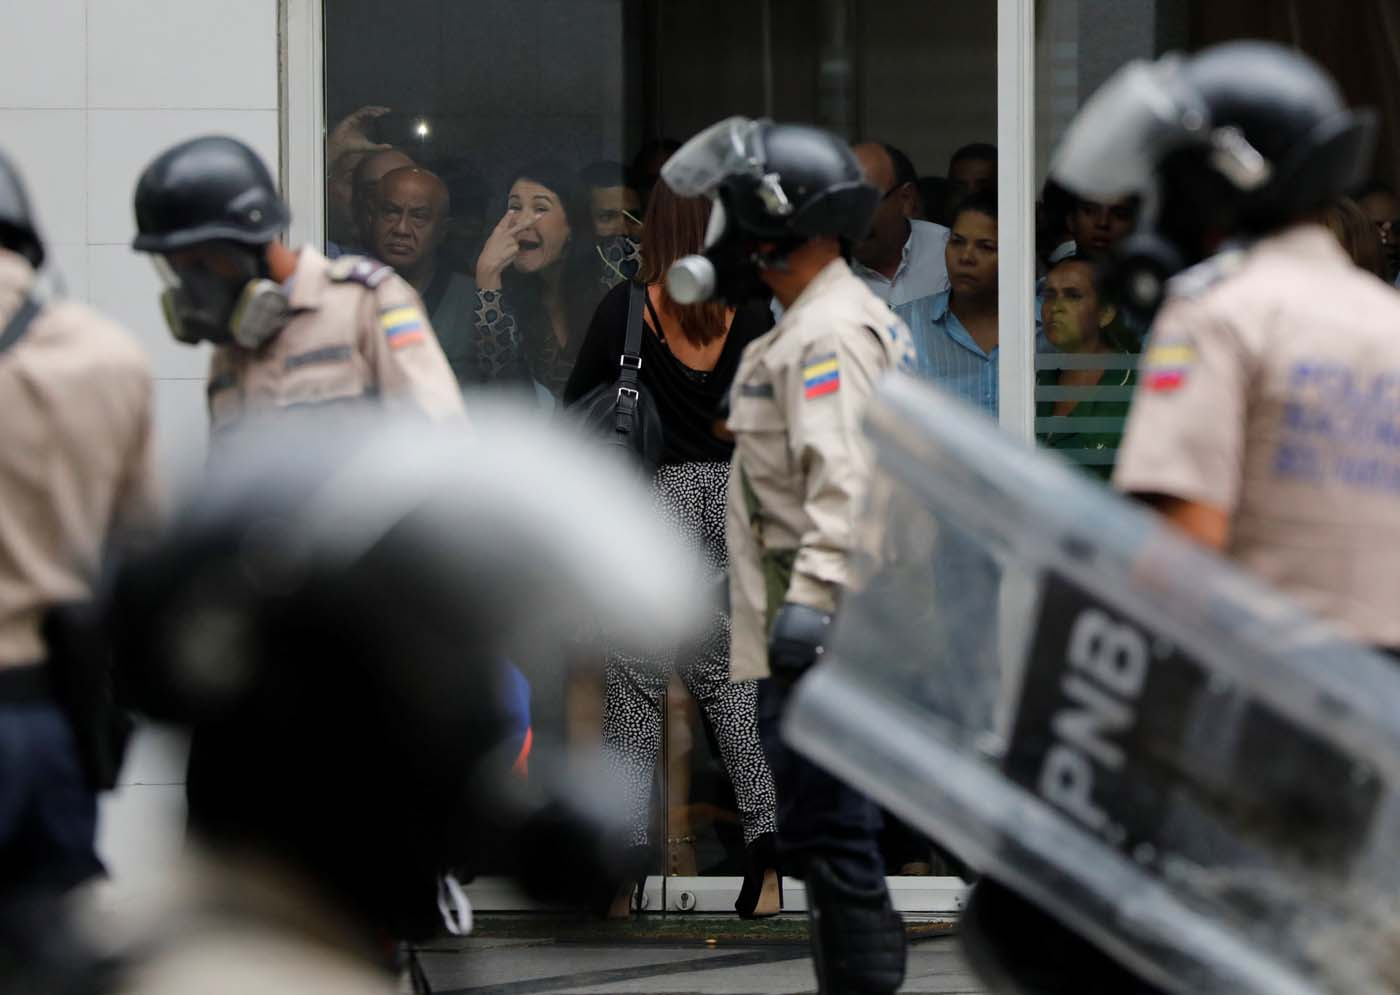 A woman gestures from inside a building as police detain protesters (not pictured) during a rally against Venezuela's President Nicolas Maduro's government in Caracas, Venezuela June 29, 2017. REUTERS/Carlos Garcia Rawlins